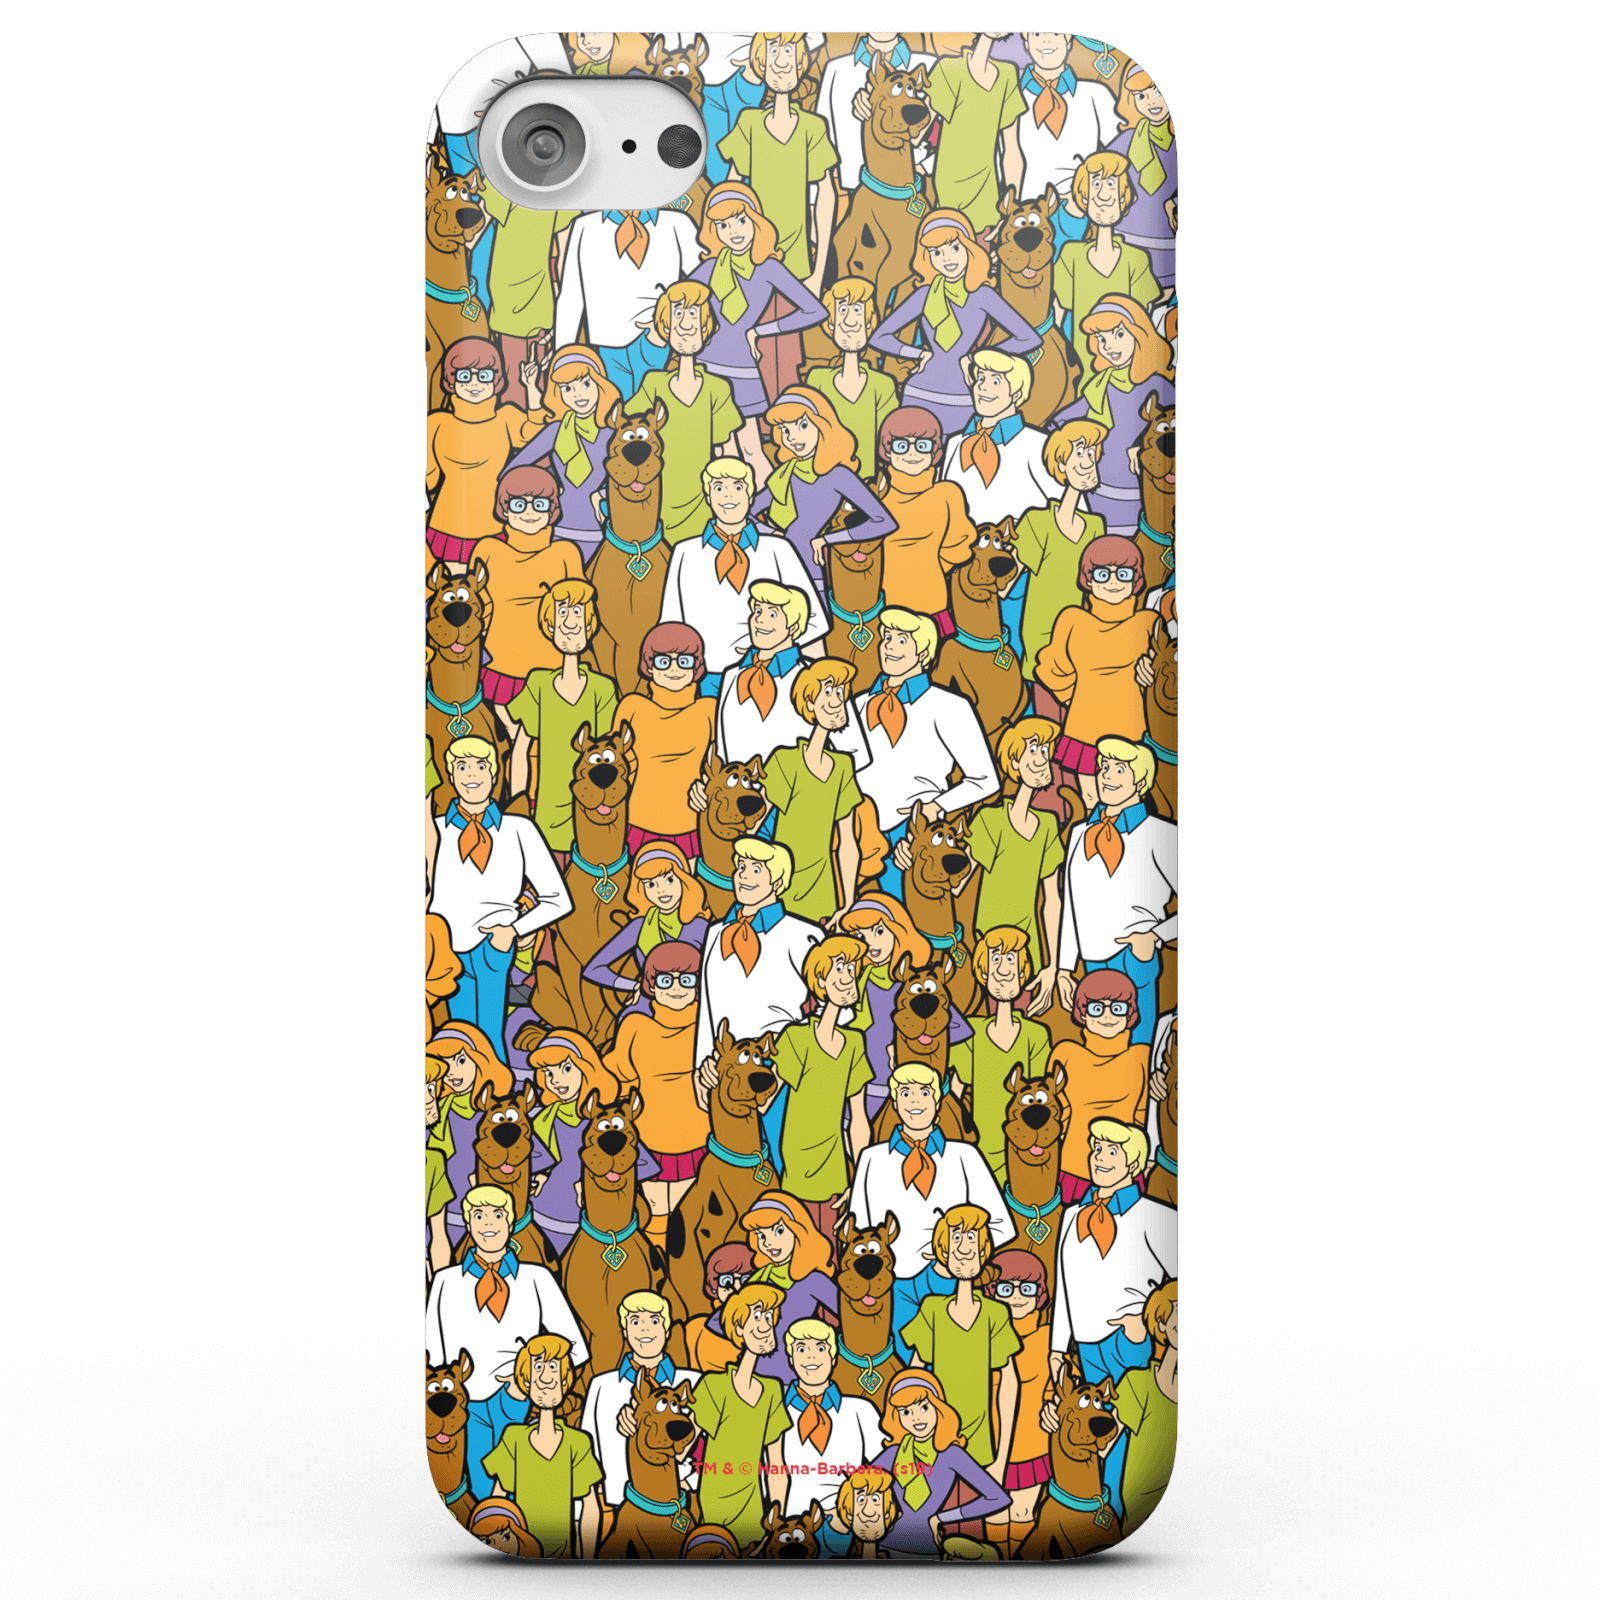 Funda Móvil Scooby-Doo Character Pattern para iPhone y Android - iPhone XR - Carcasa rígida - Mate de Scooby Doo